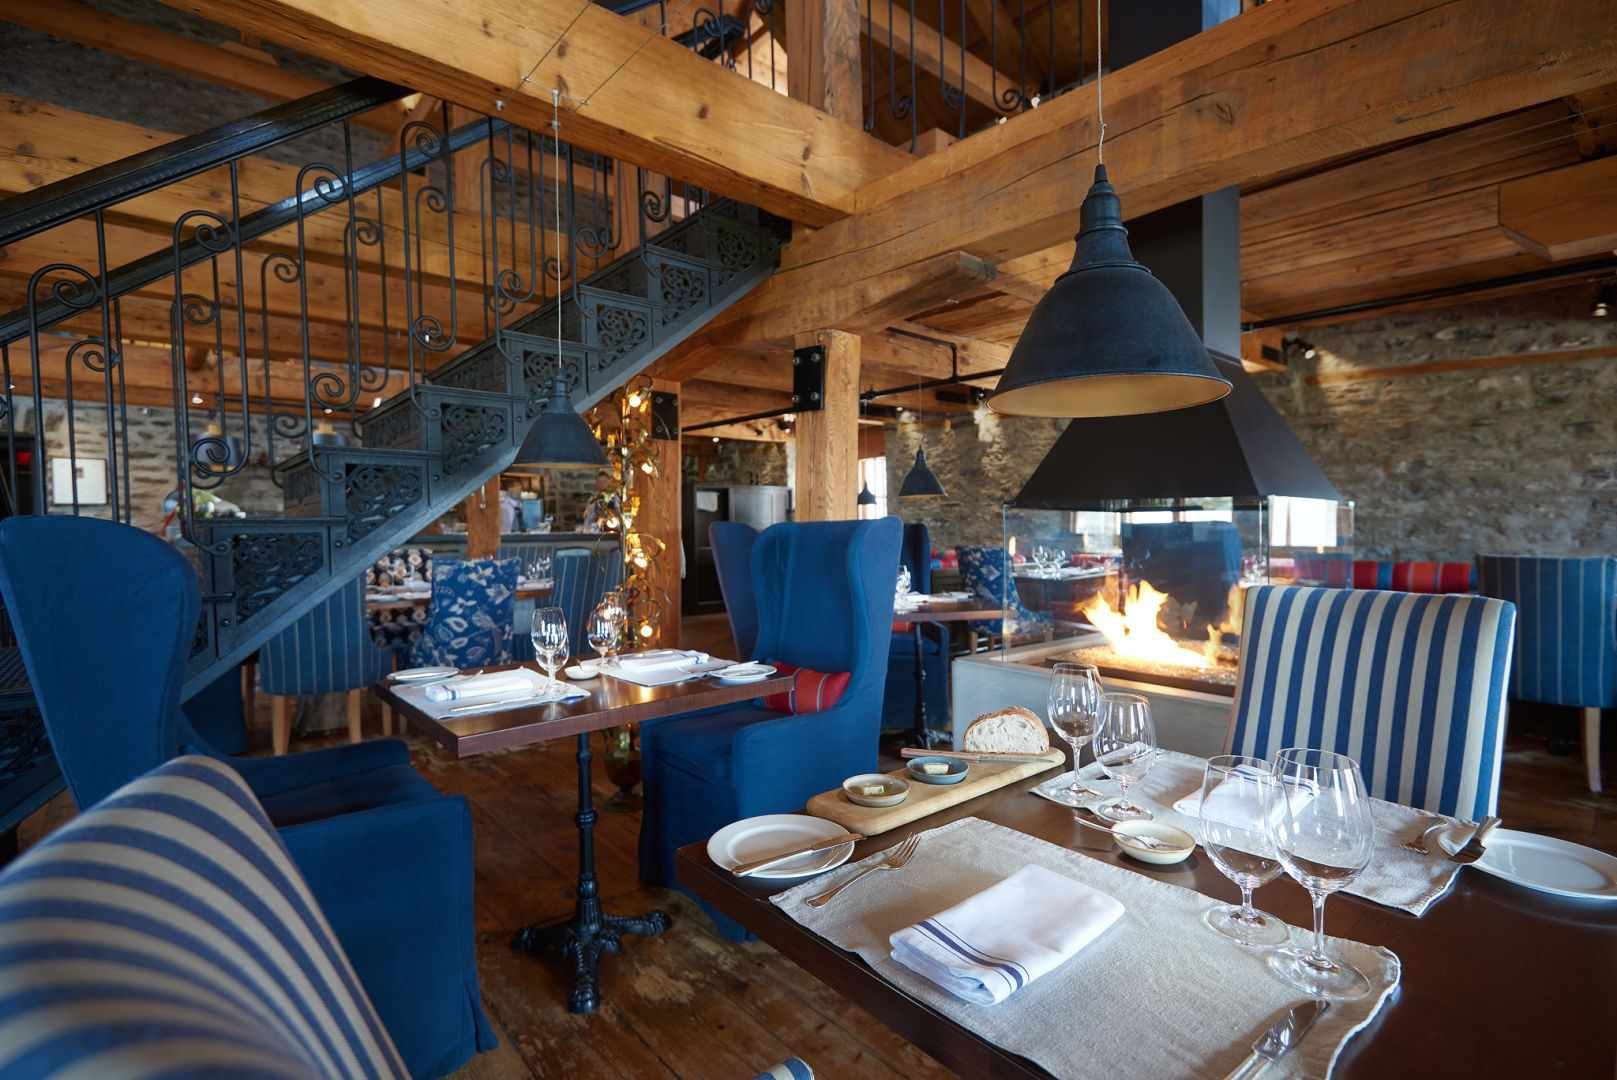 blue and white chairs in a wood-accented dining room at Chez Muffy